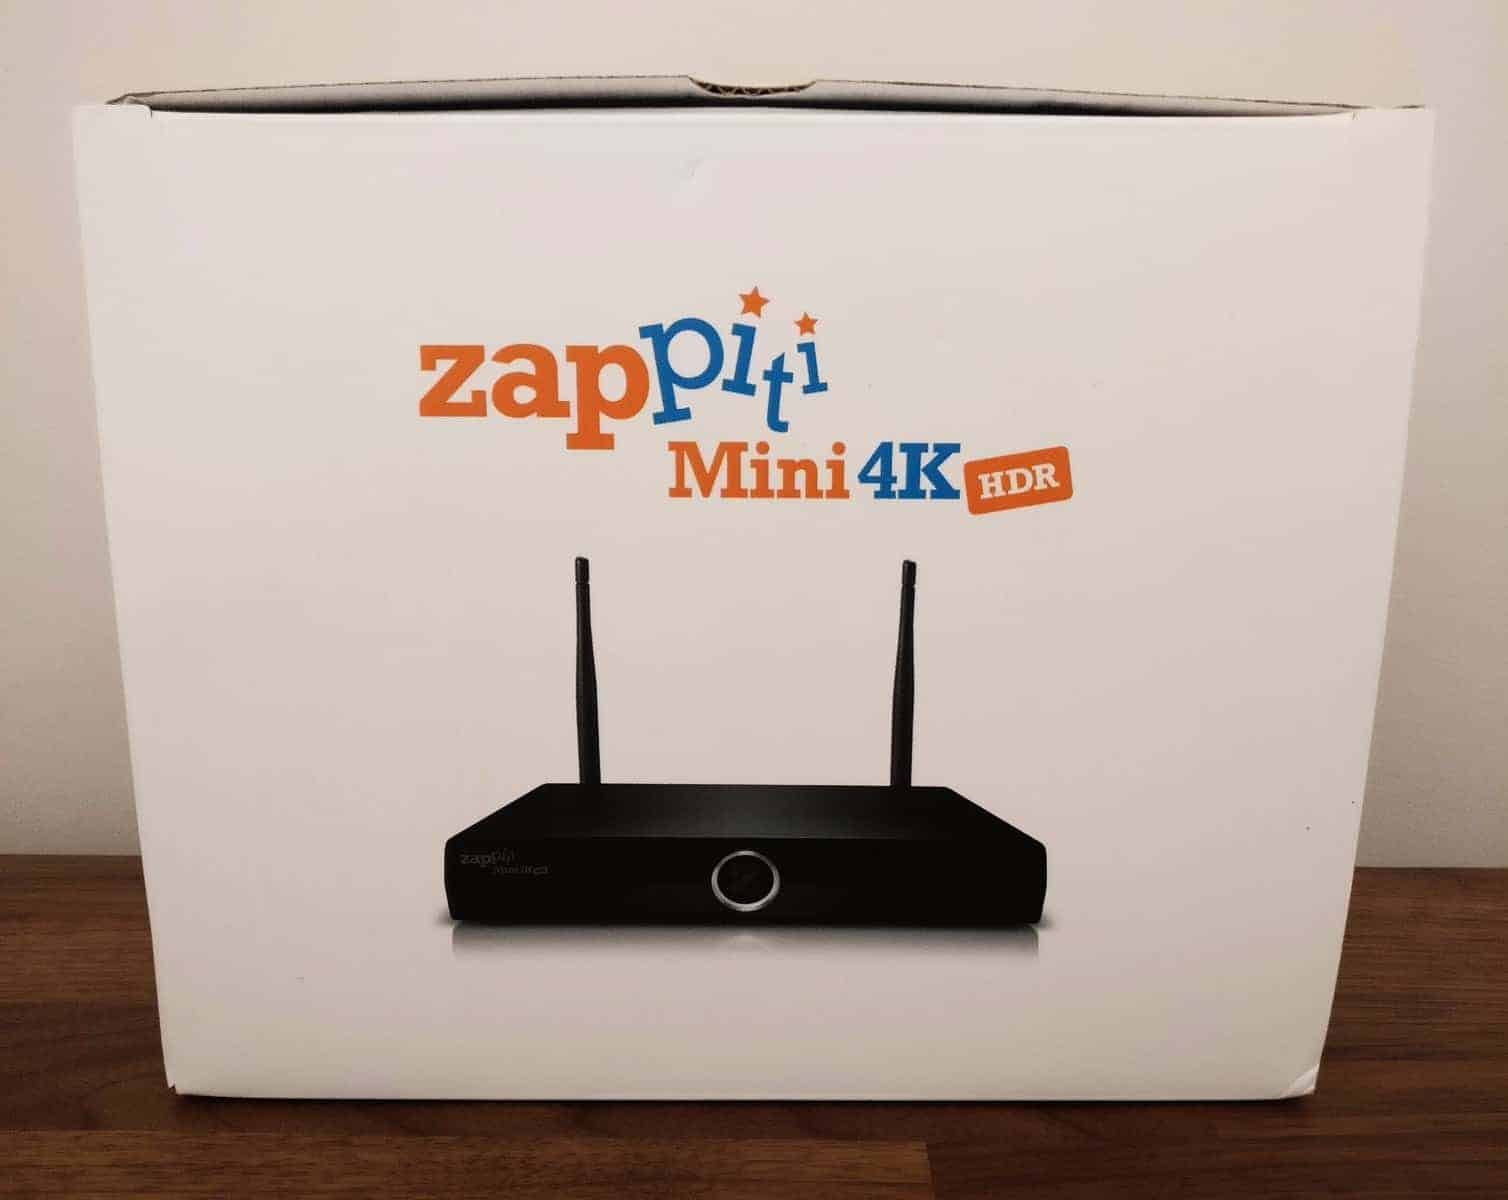 Zappiti-Photos01 Zappiti Mini 4K HDR Review